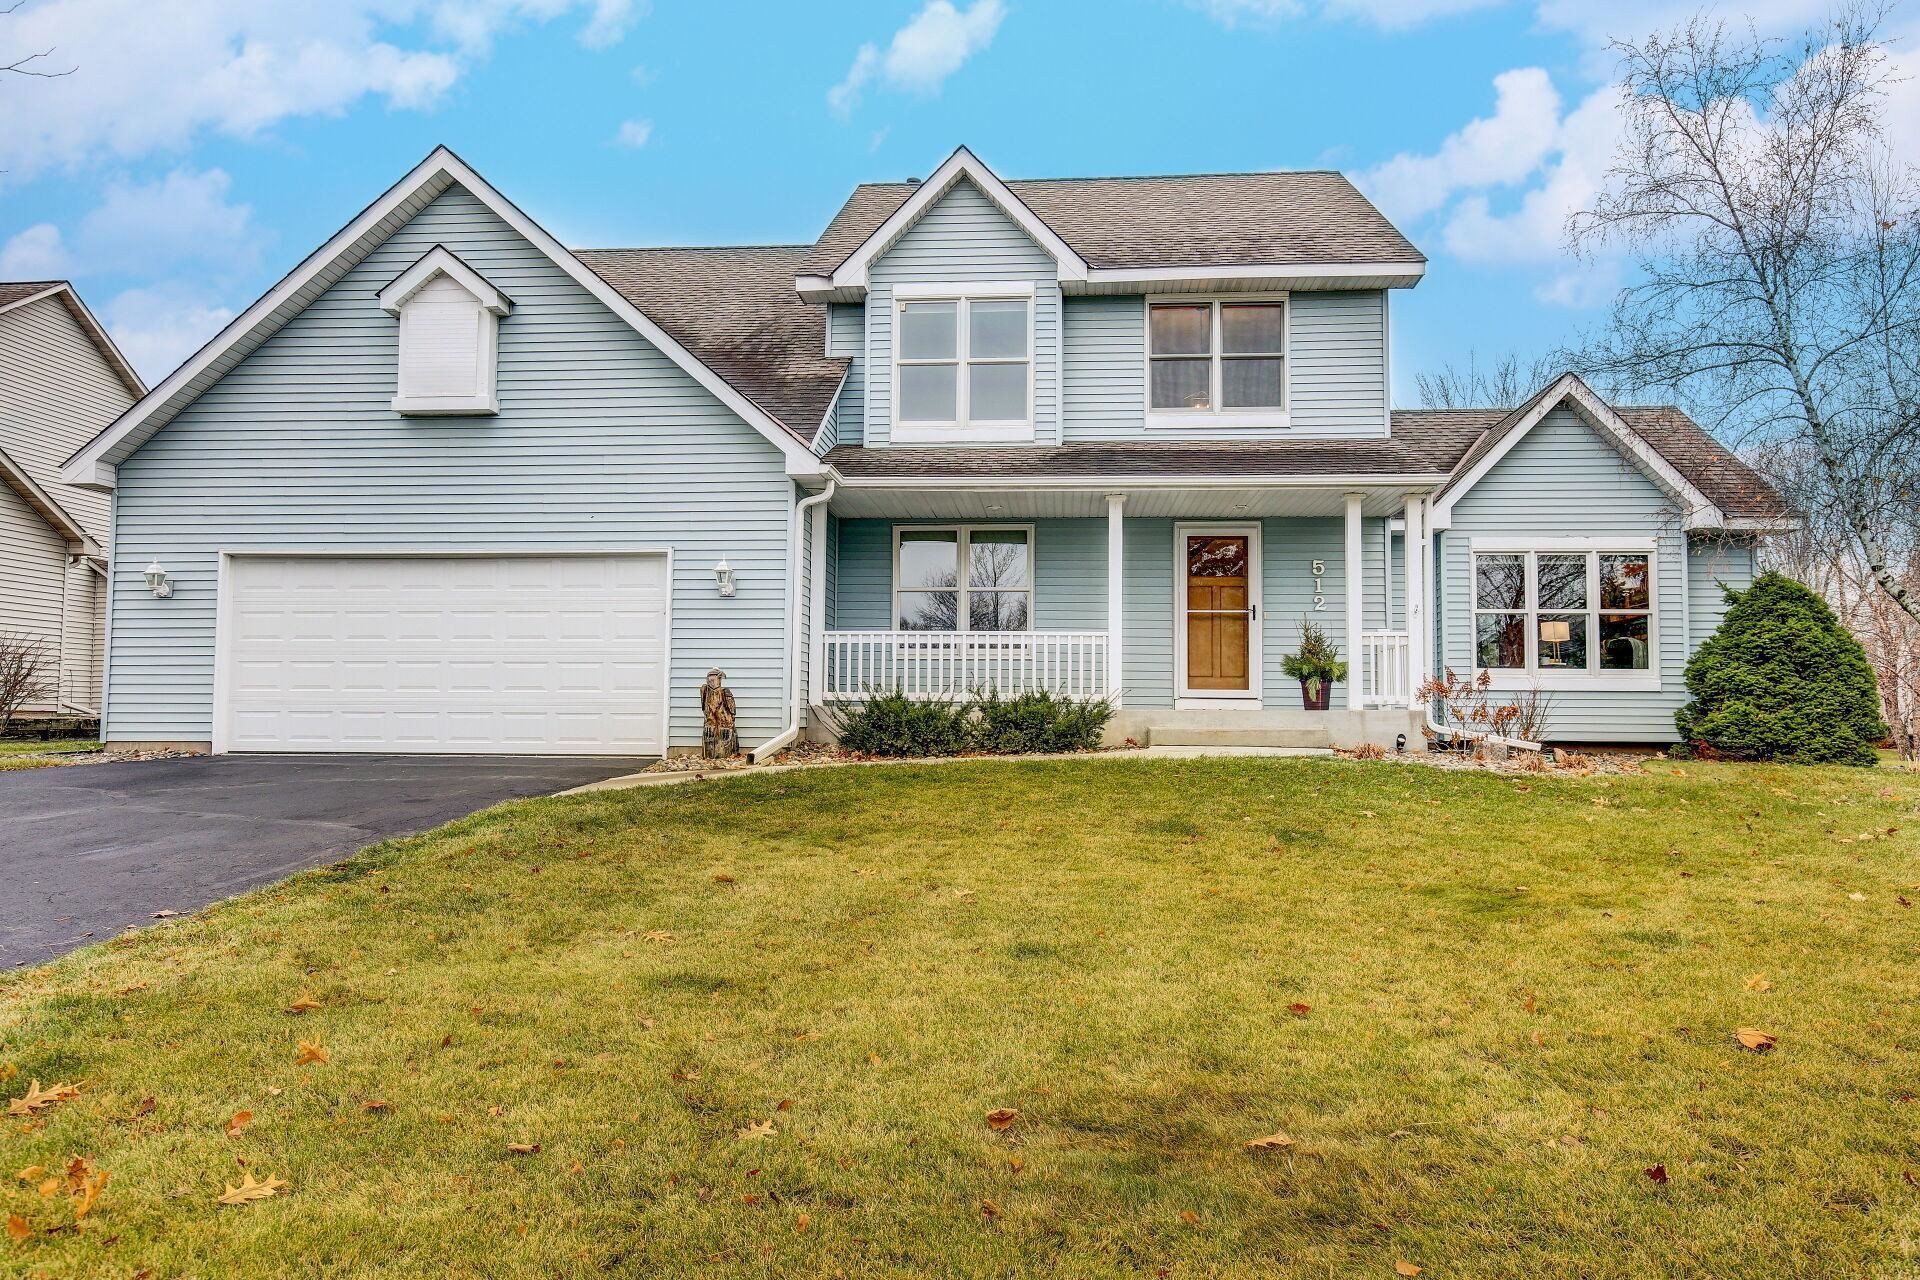 512 White Pine Way, Eagan, MN 55123 - MLS#: 5689632